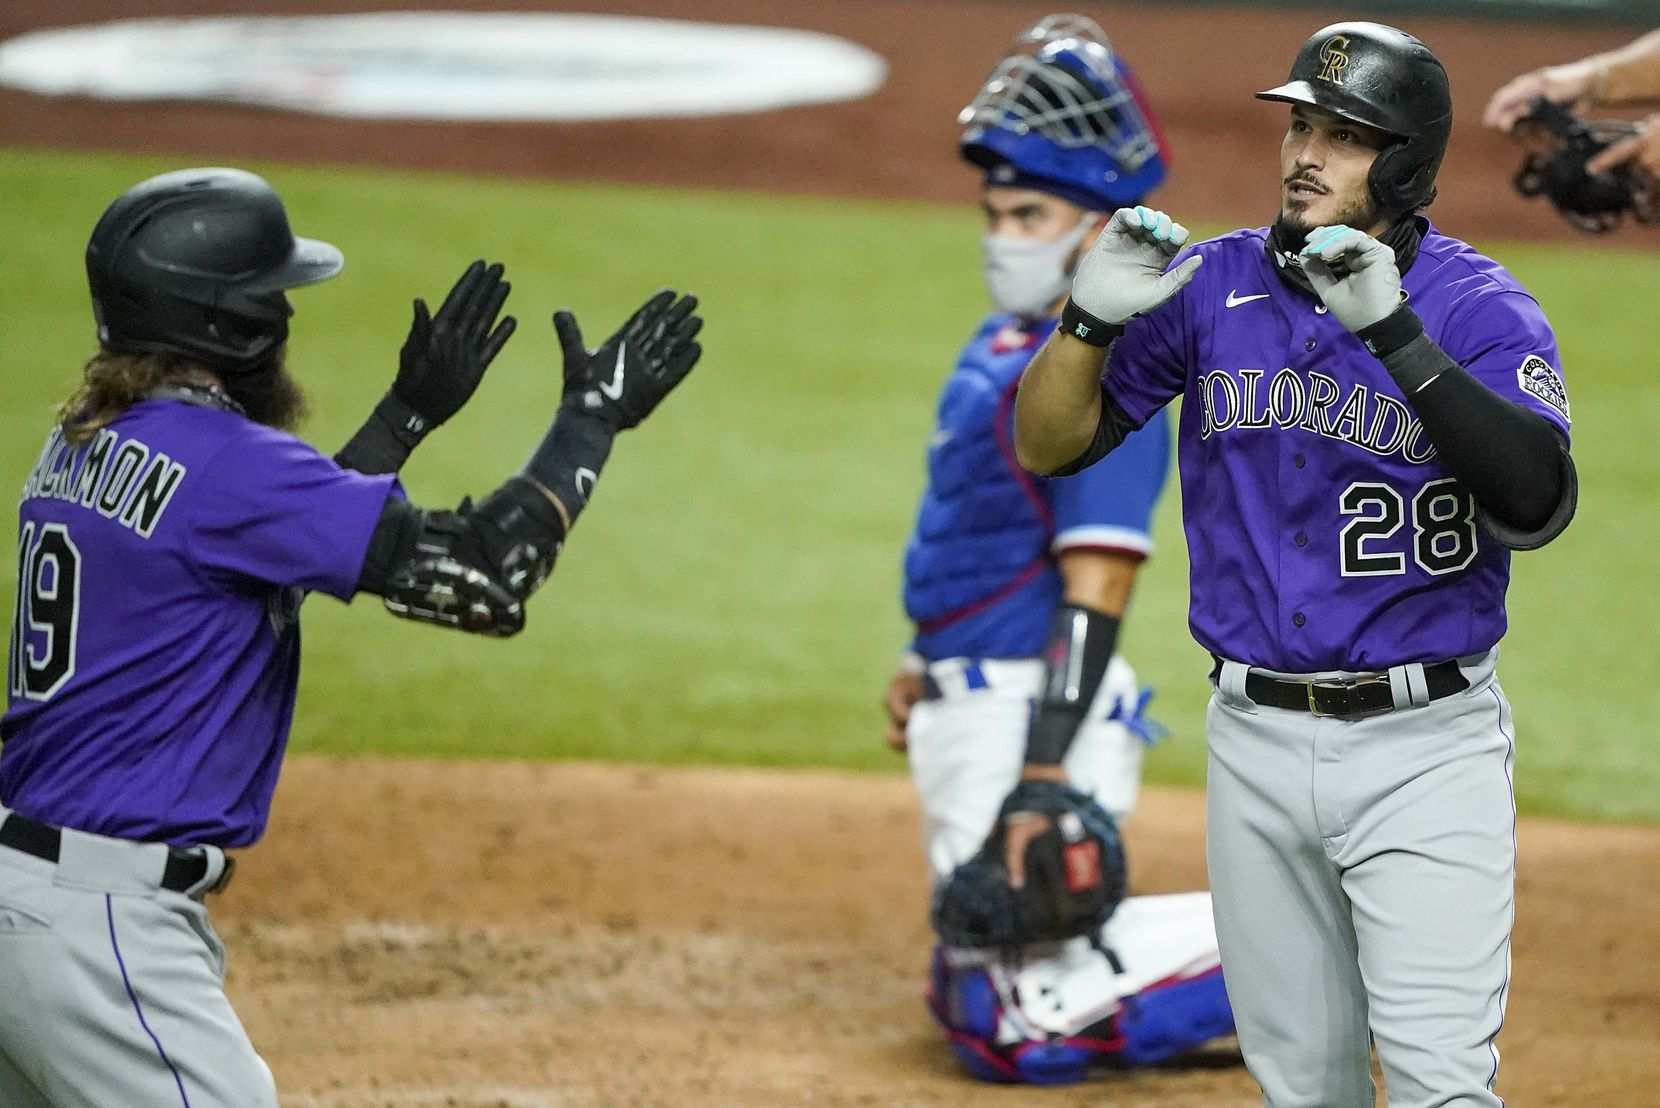 Texas Rangers catcher Robinson Chirinos watches Colorado Rockies third baseman Nolan Arenado (28) celebrate with outfielder Charlie Blackmon after hitting a 2-run home run during the fourth inning of an exhibition game at Globe Life Field on Tuesday, July 21, 2020.